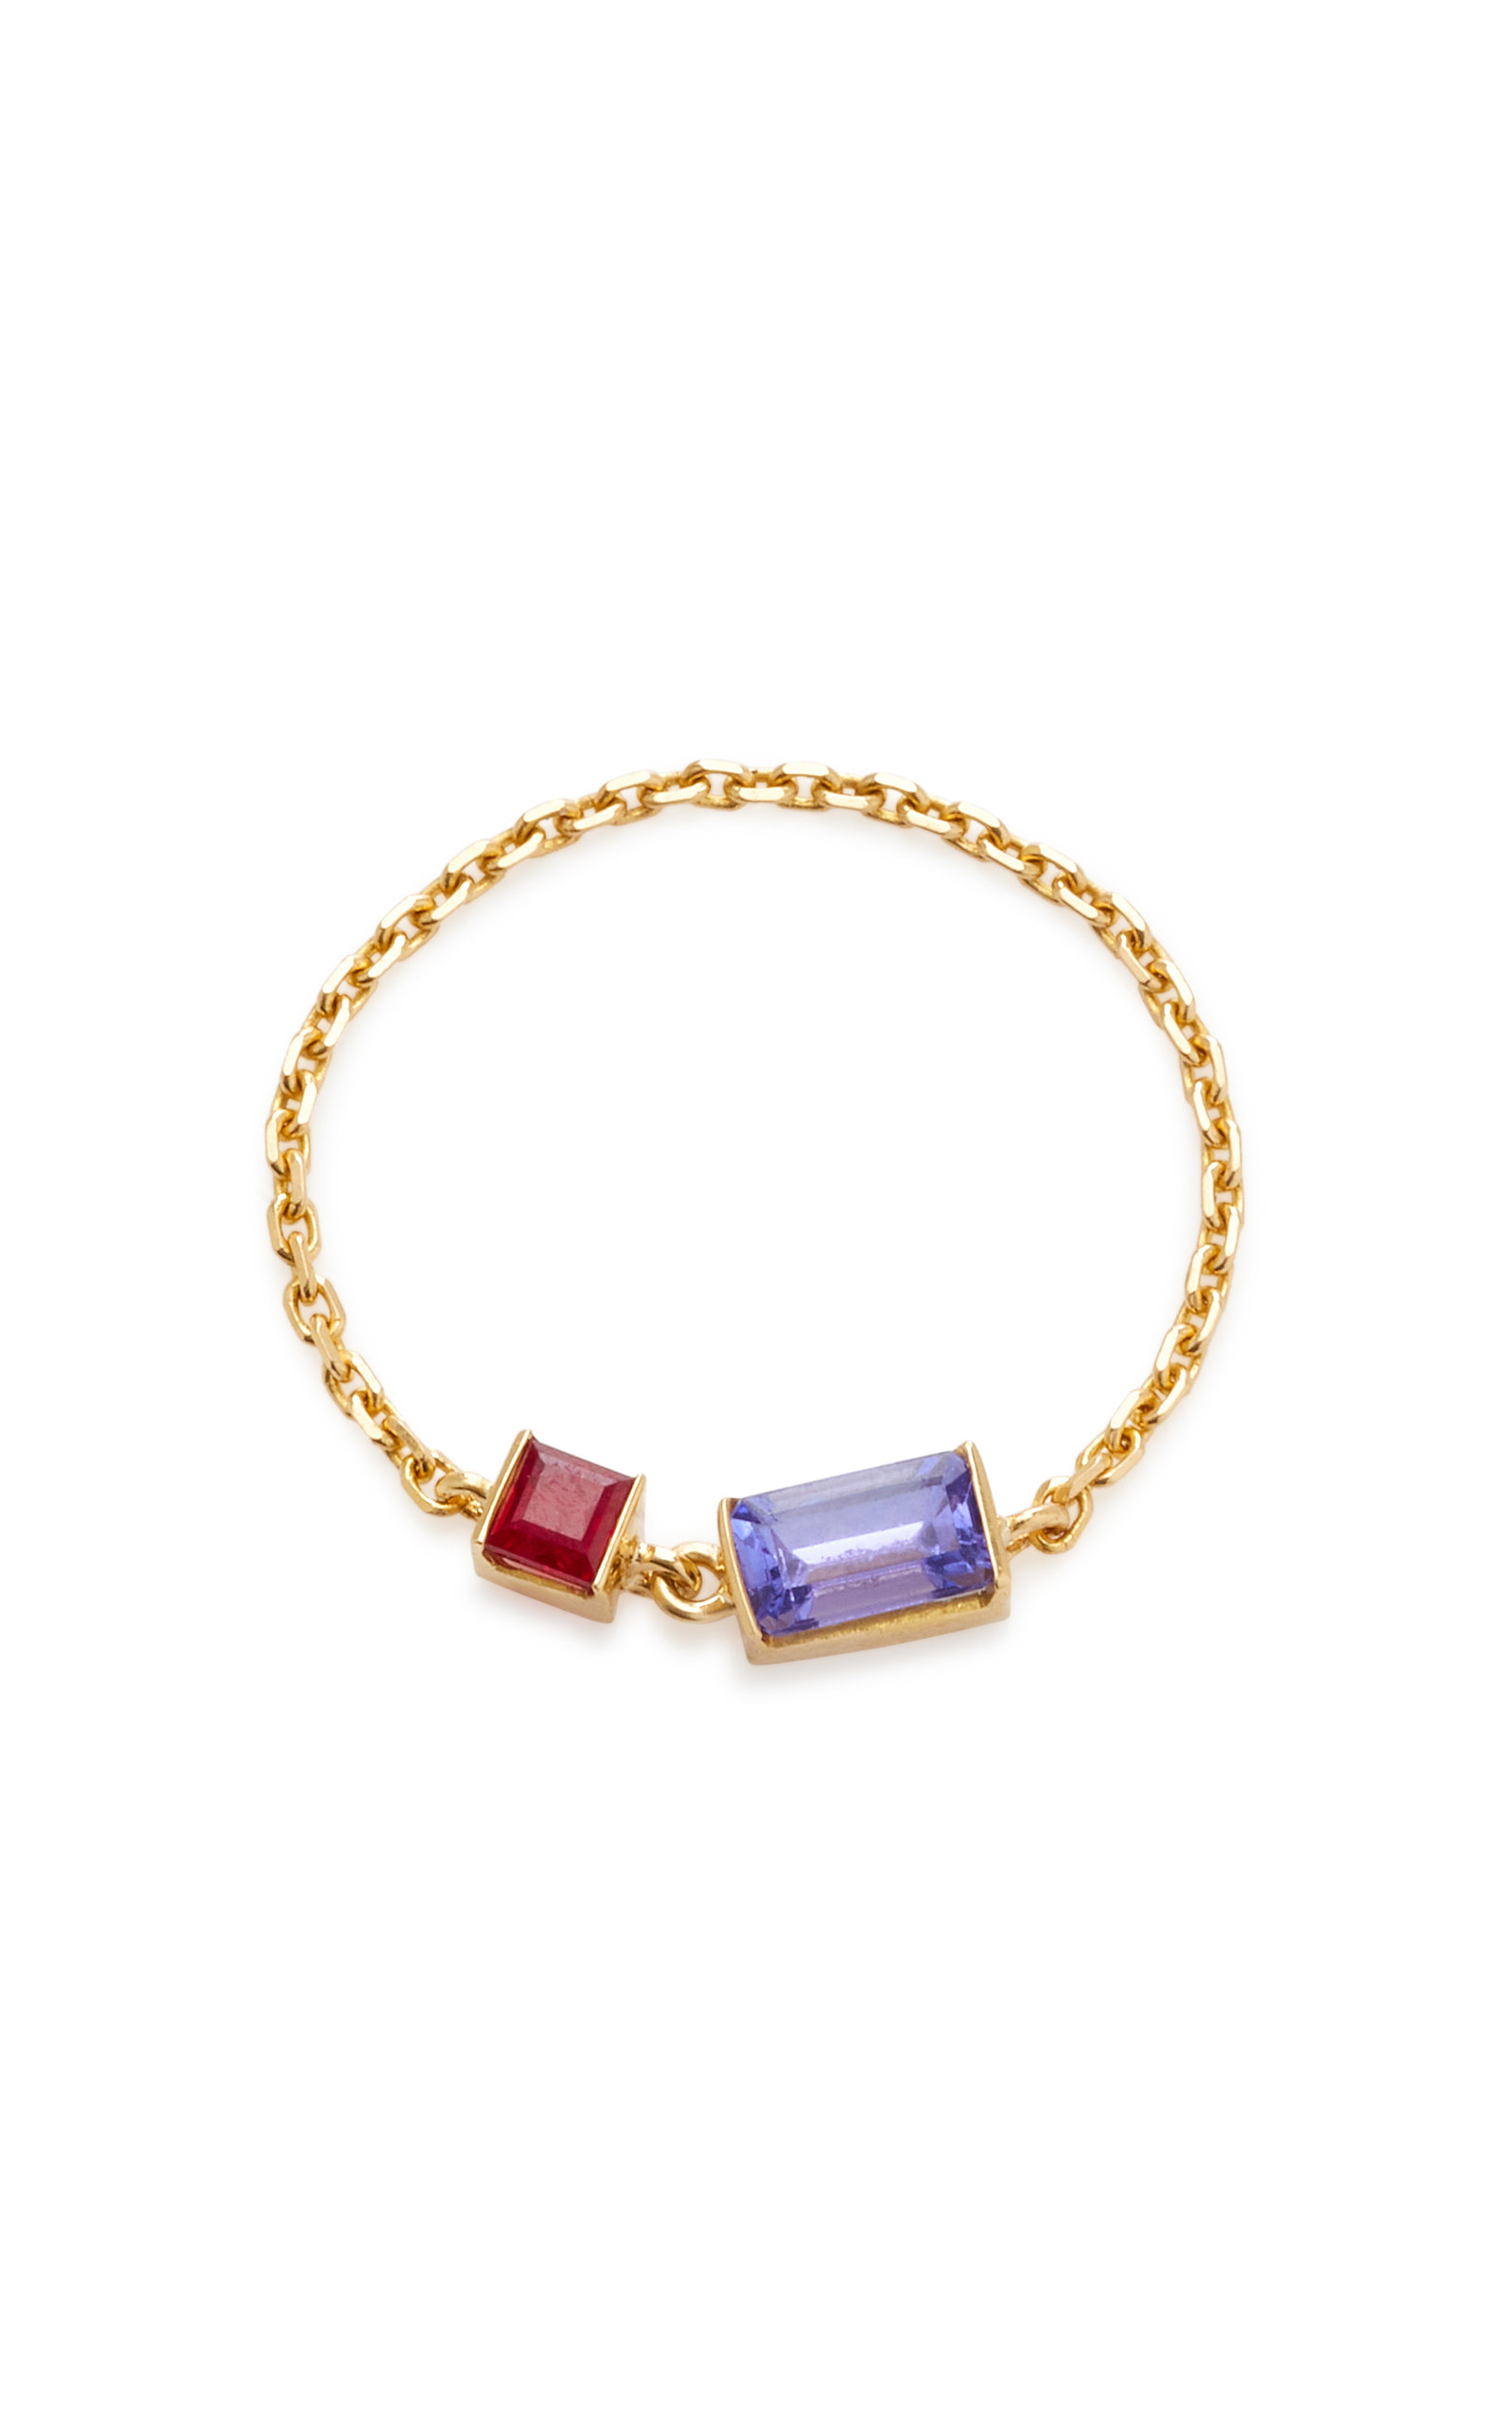 YI COLLECTION 18K GOLD TANZANITE AND RUBY CHAIN RING